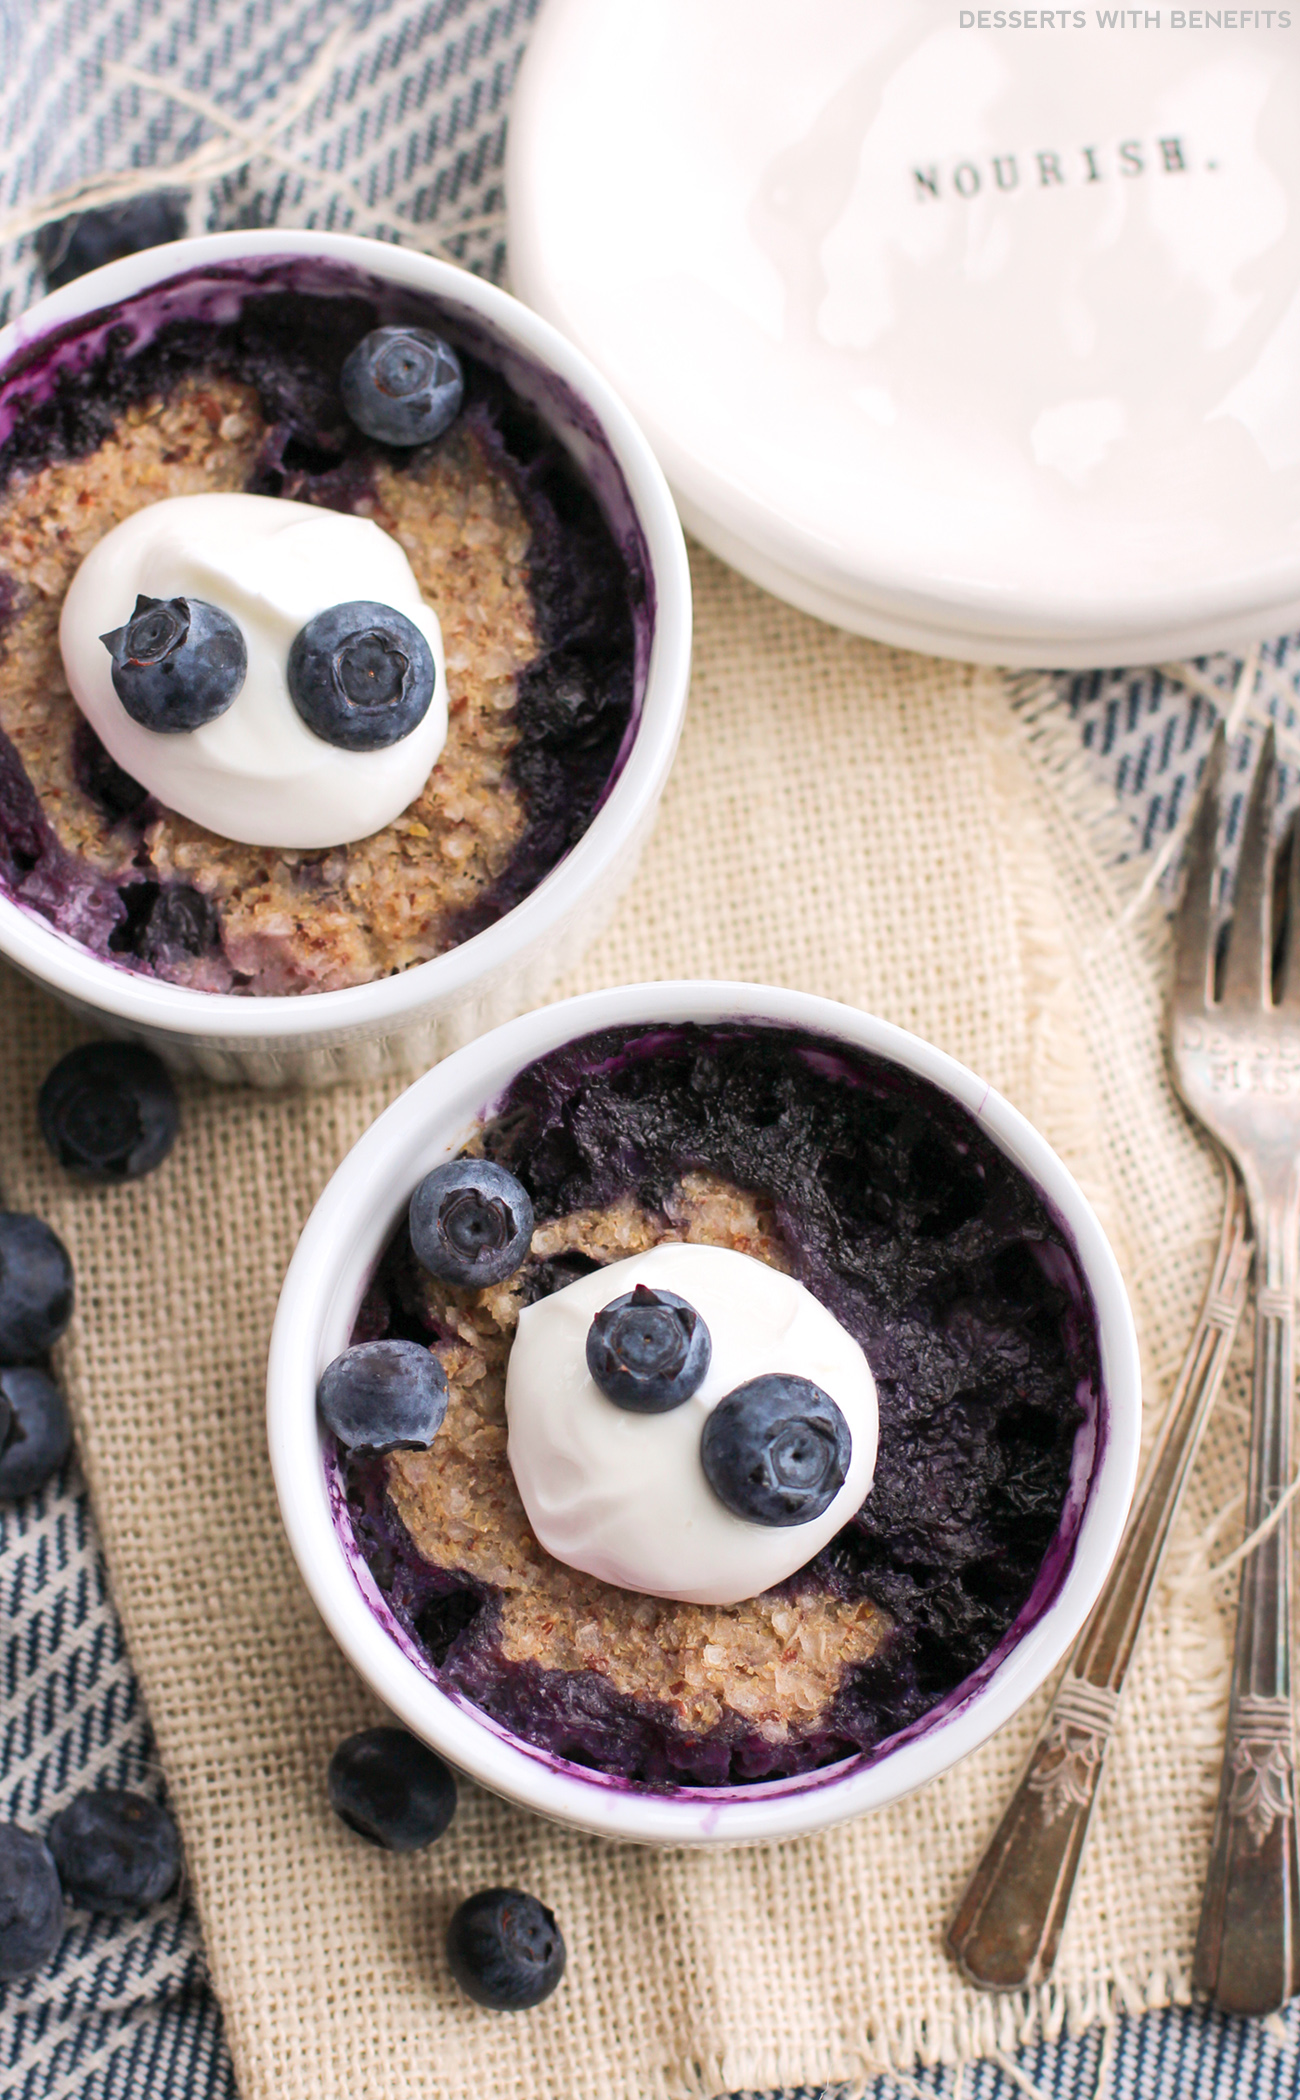 Healthy Microwaveable Blueberry Quinoa Flake Muffins (refined sugar free, low fat, high fiber, gluten free, dairy free, vegan) - Healthy Dessert Recipes at Desserts with Benefits